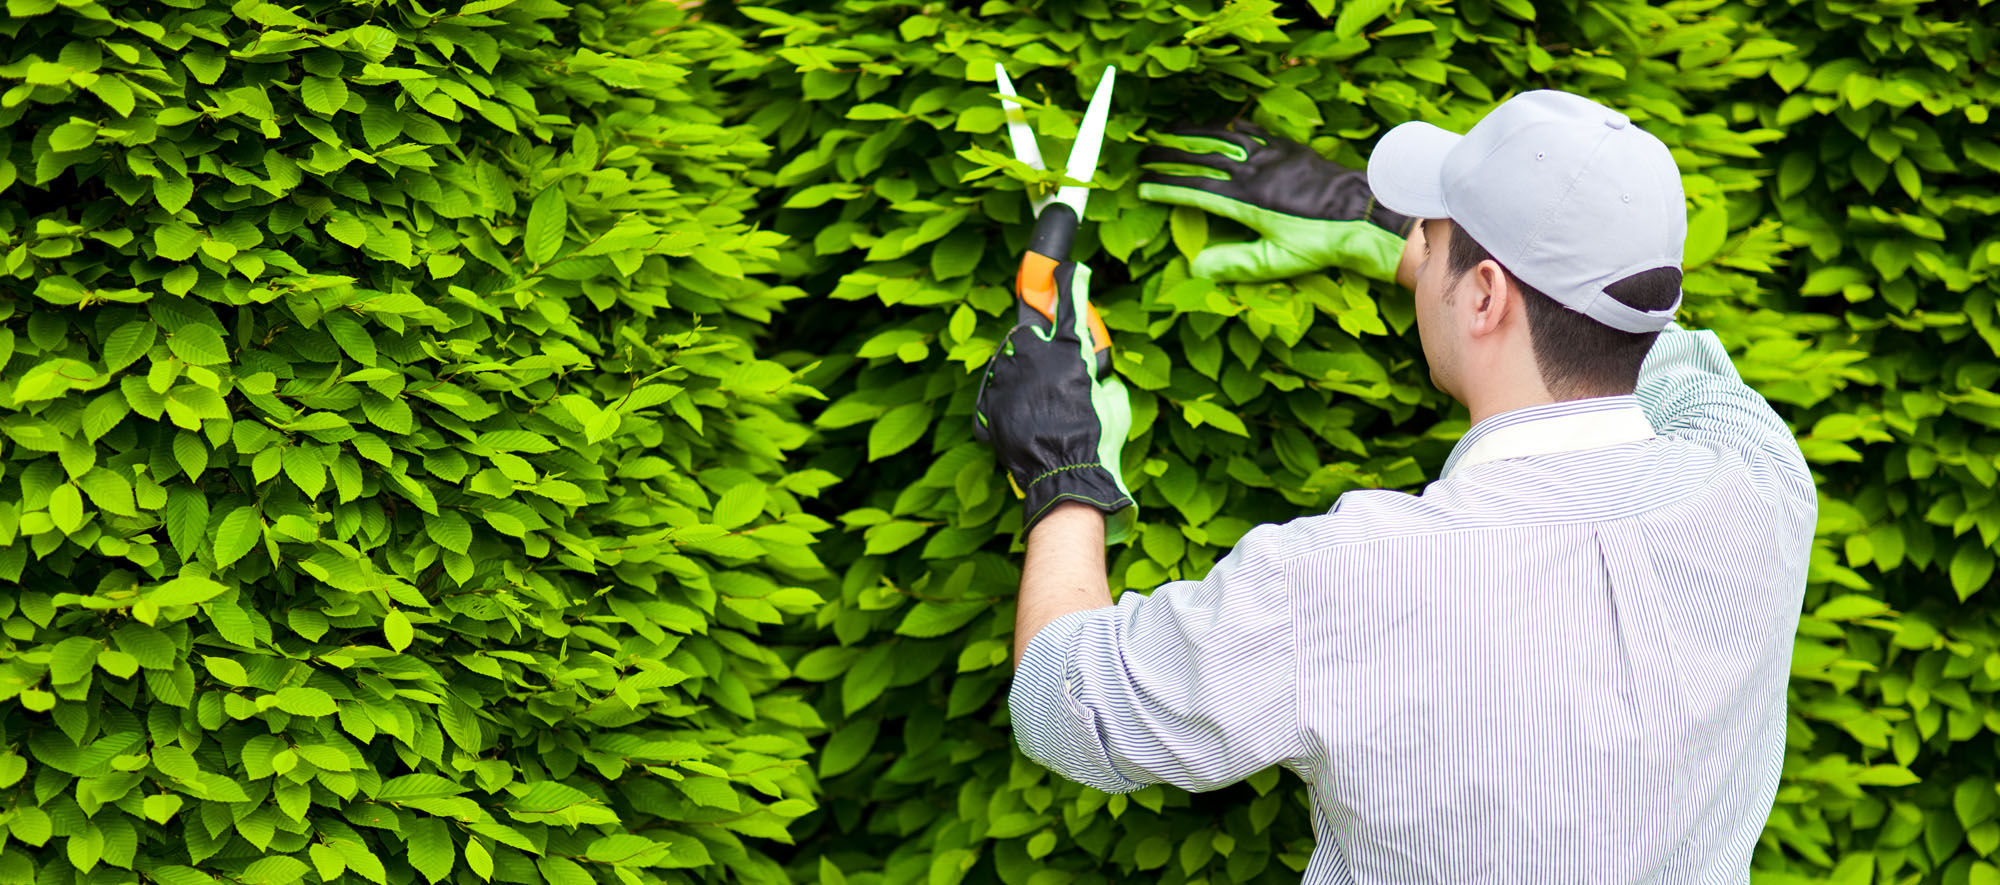 hedge-pruning